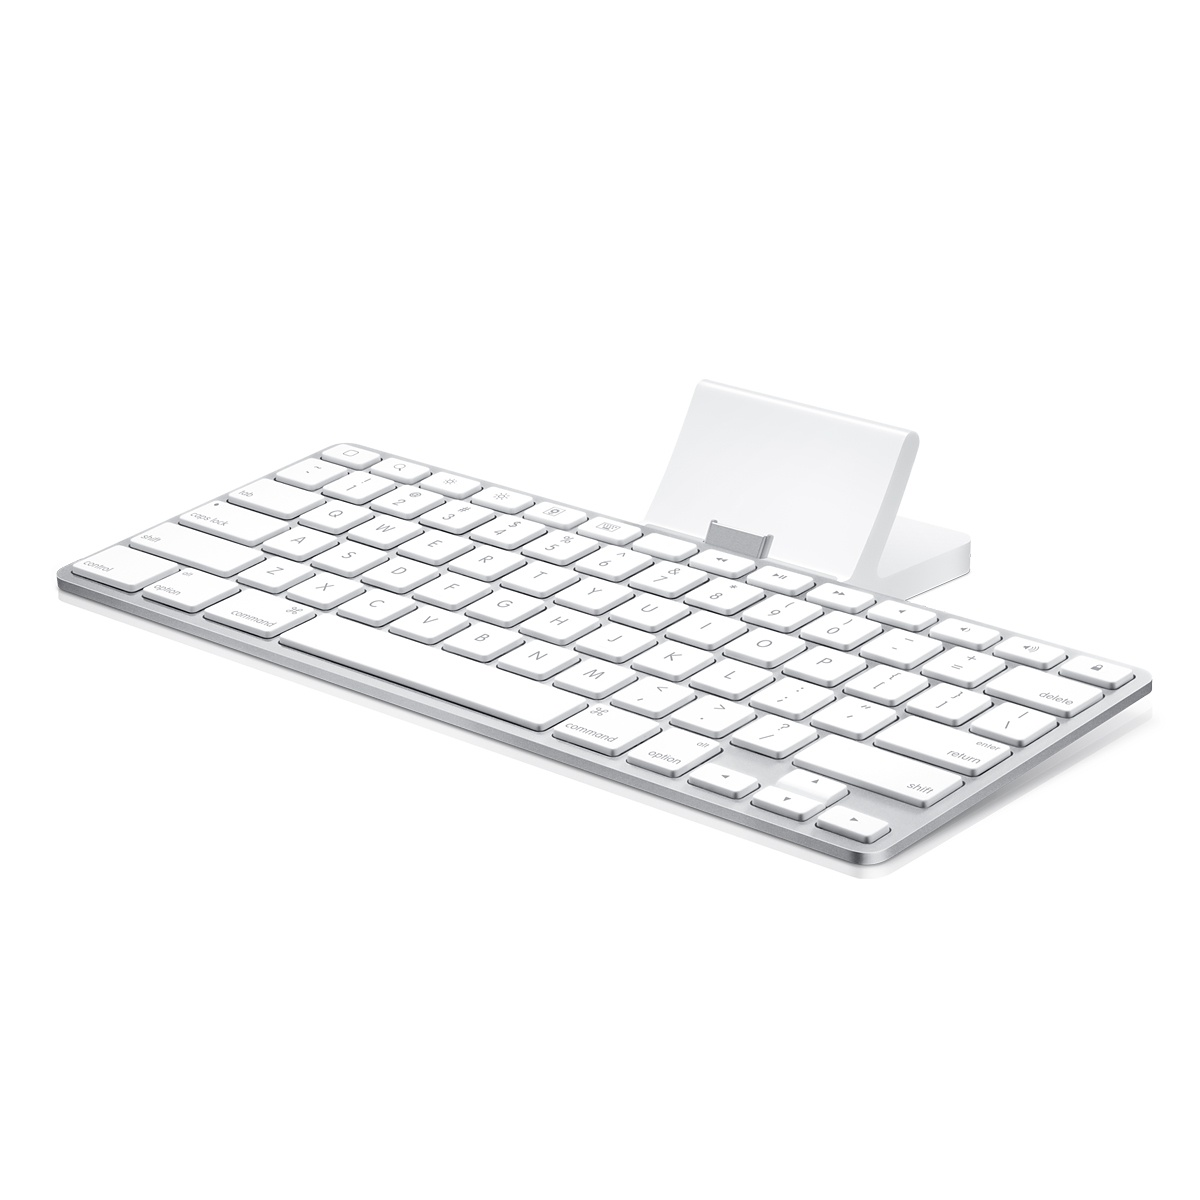 Apple offers the iPad keyboard Dock product at a price of $69.